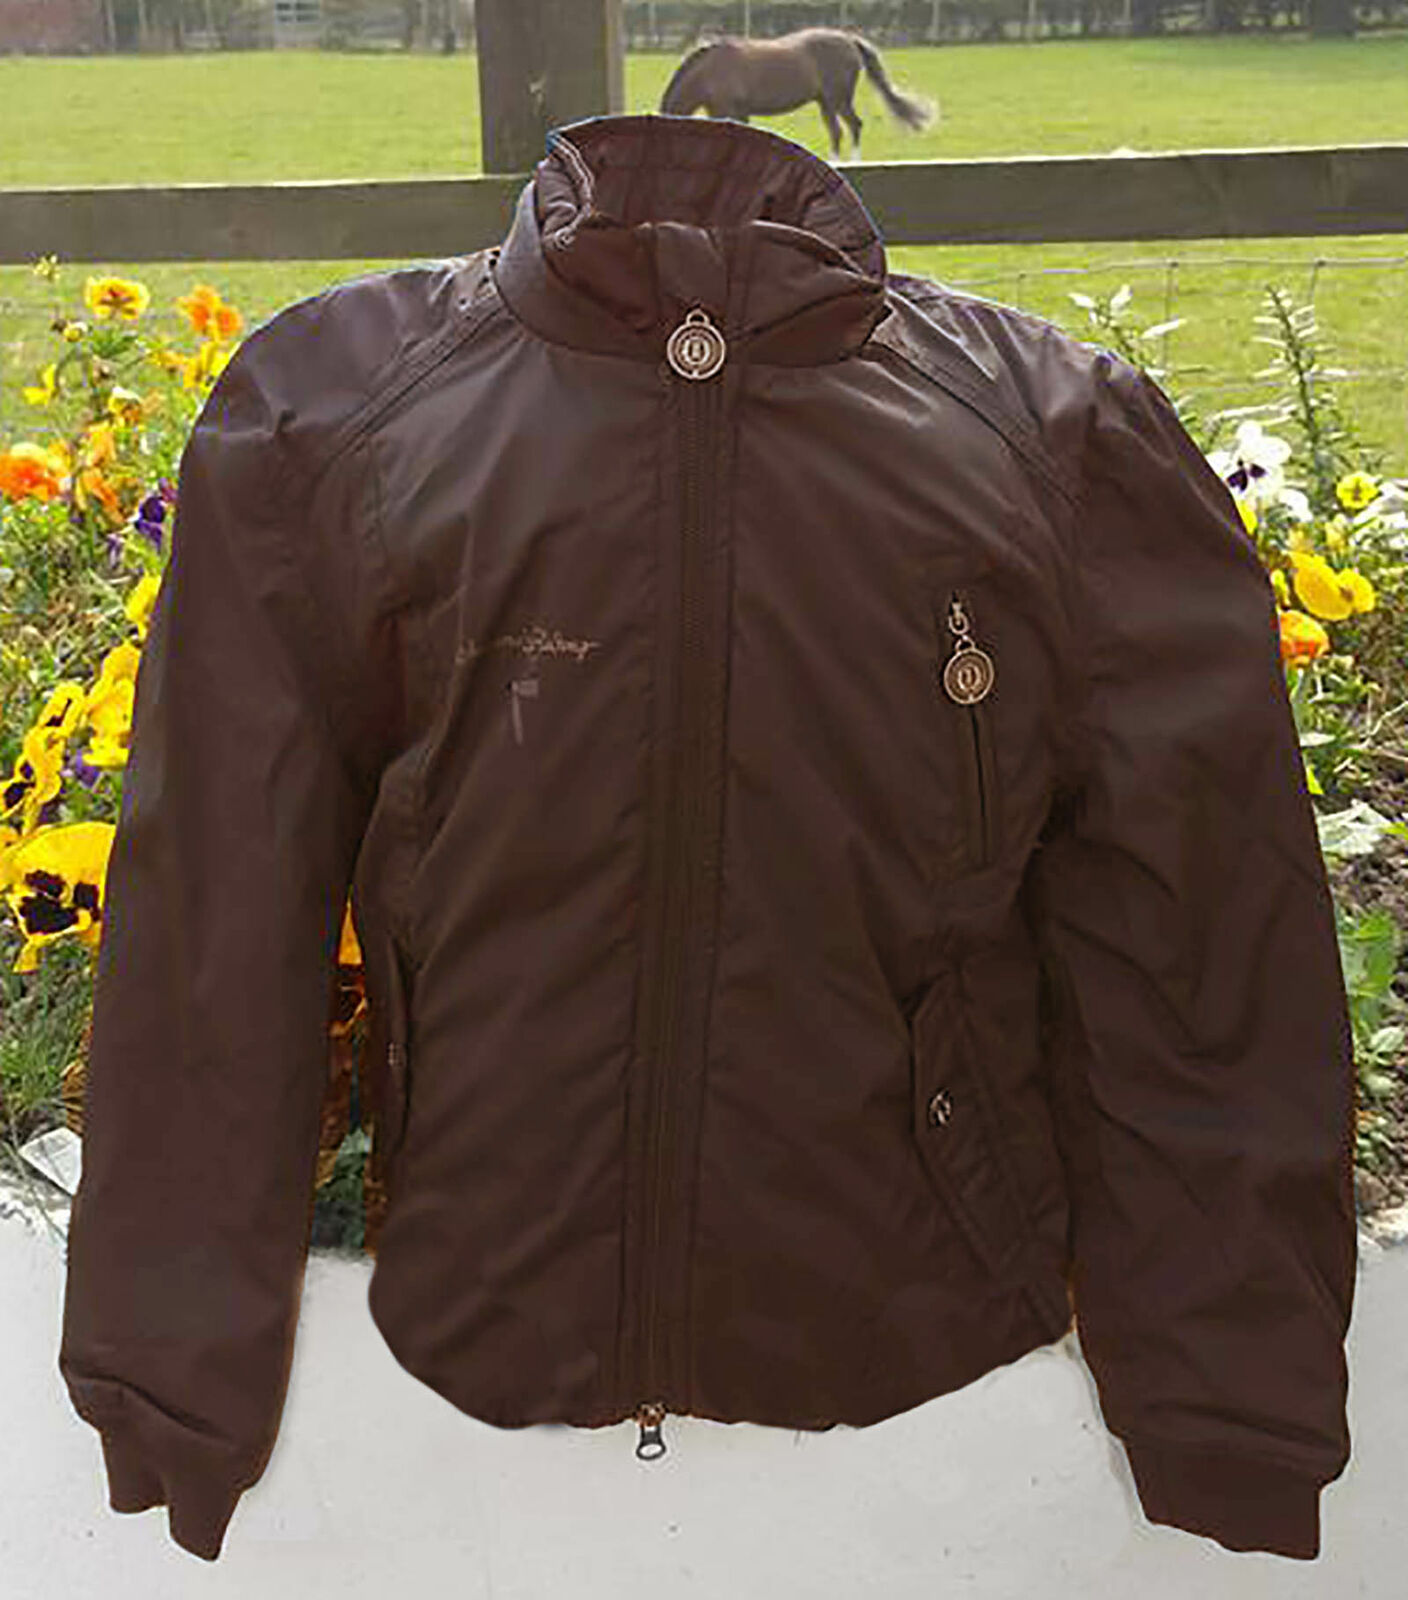 Imperial Riding Adult Bomber Jacket-Mystery (KL36316001)